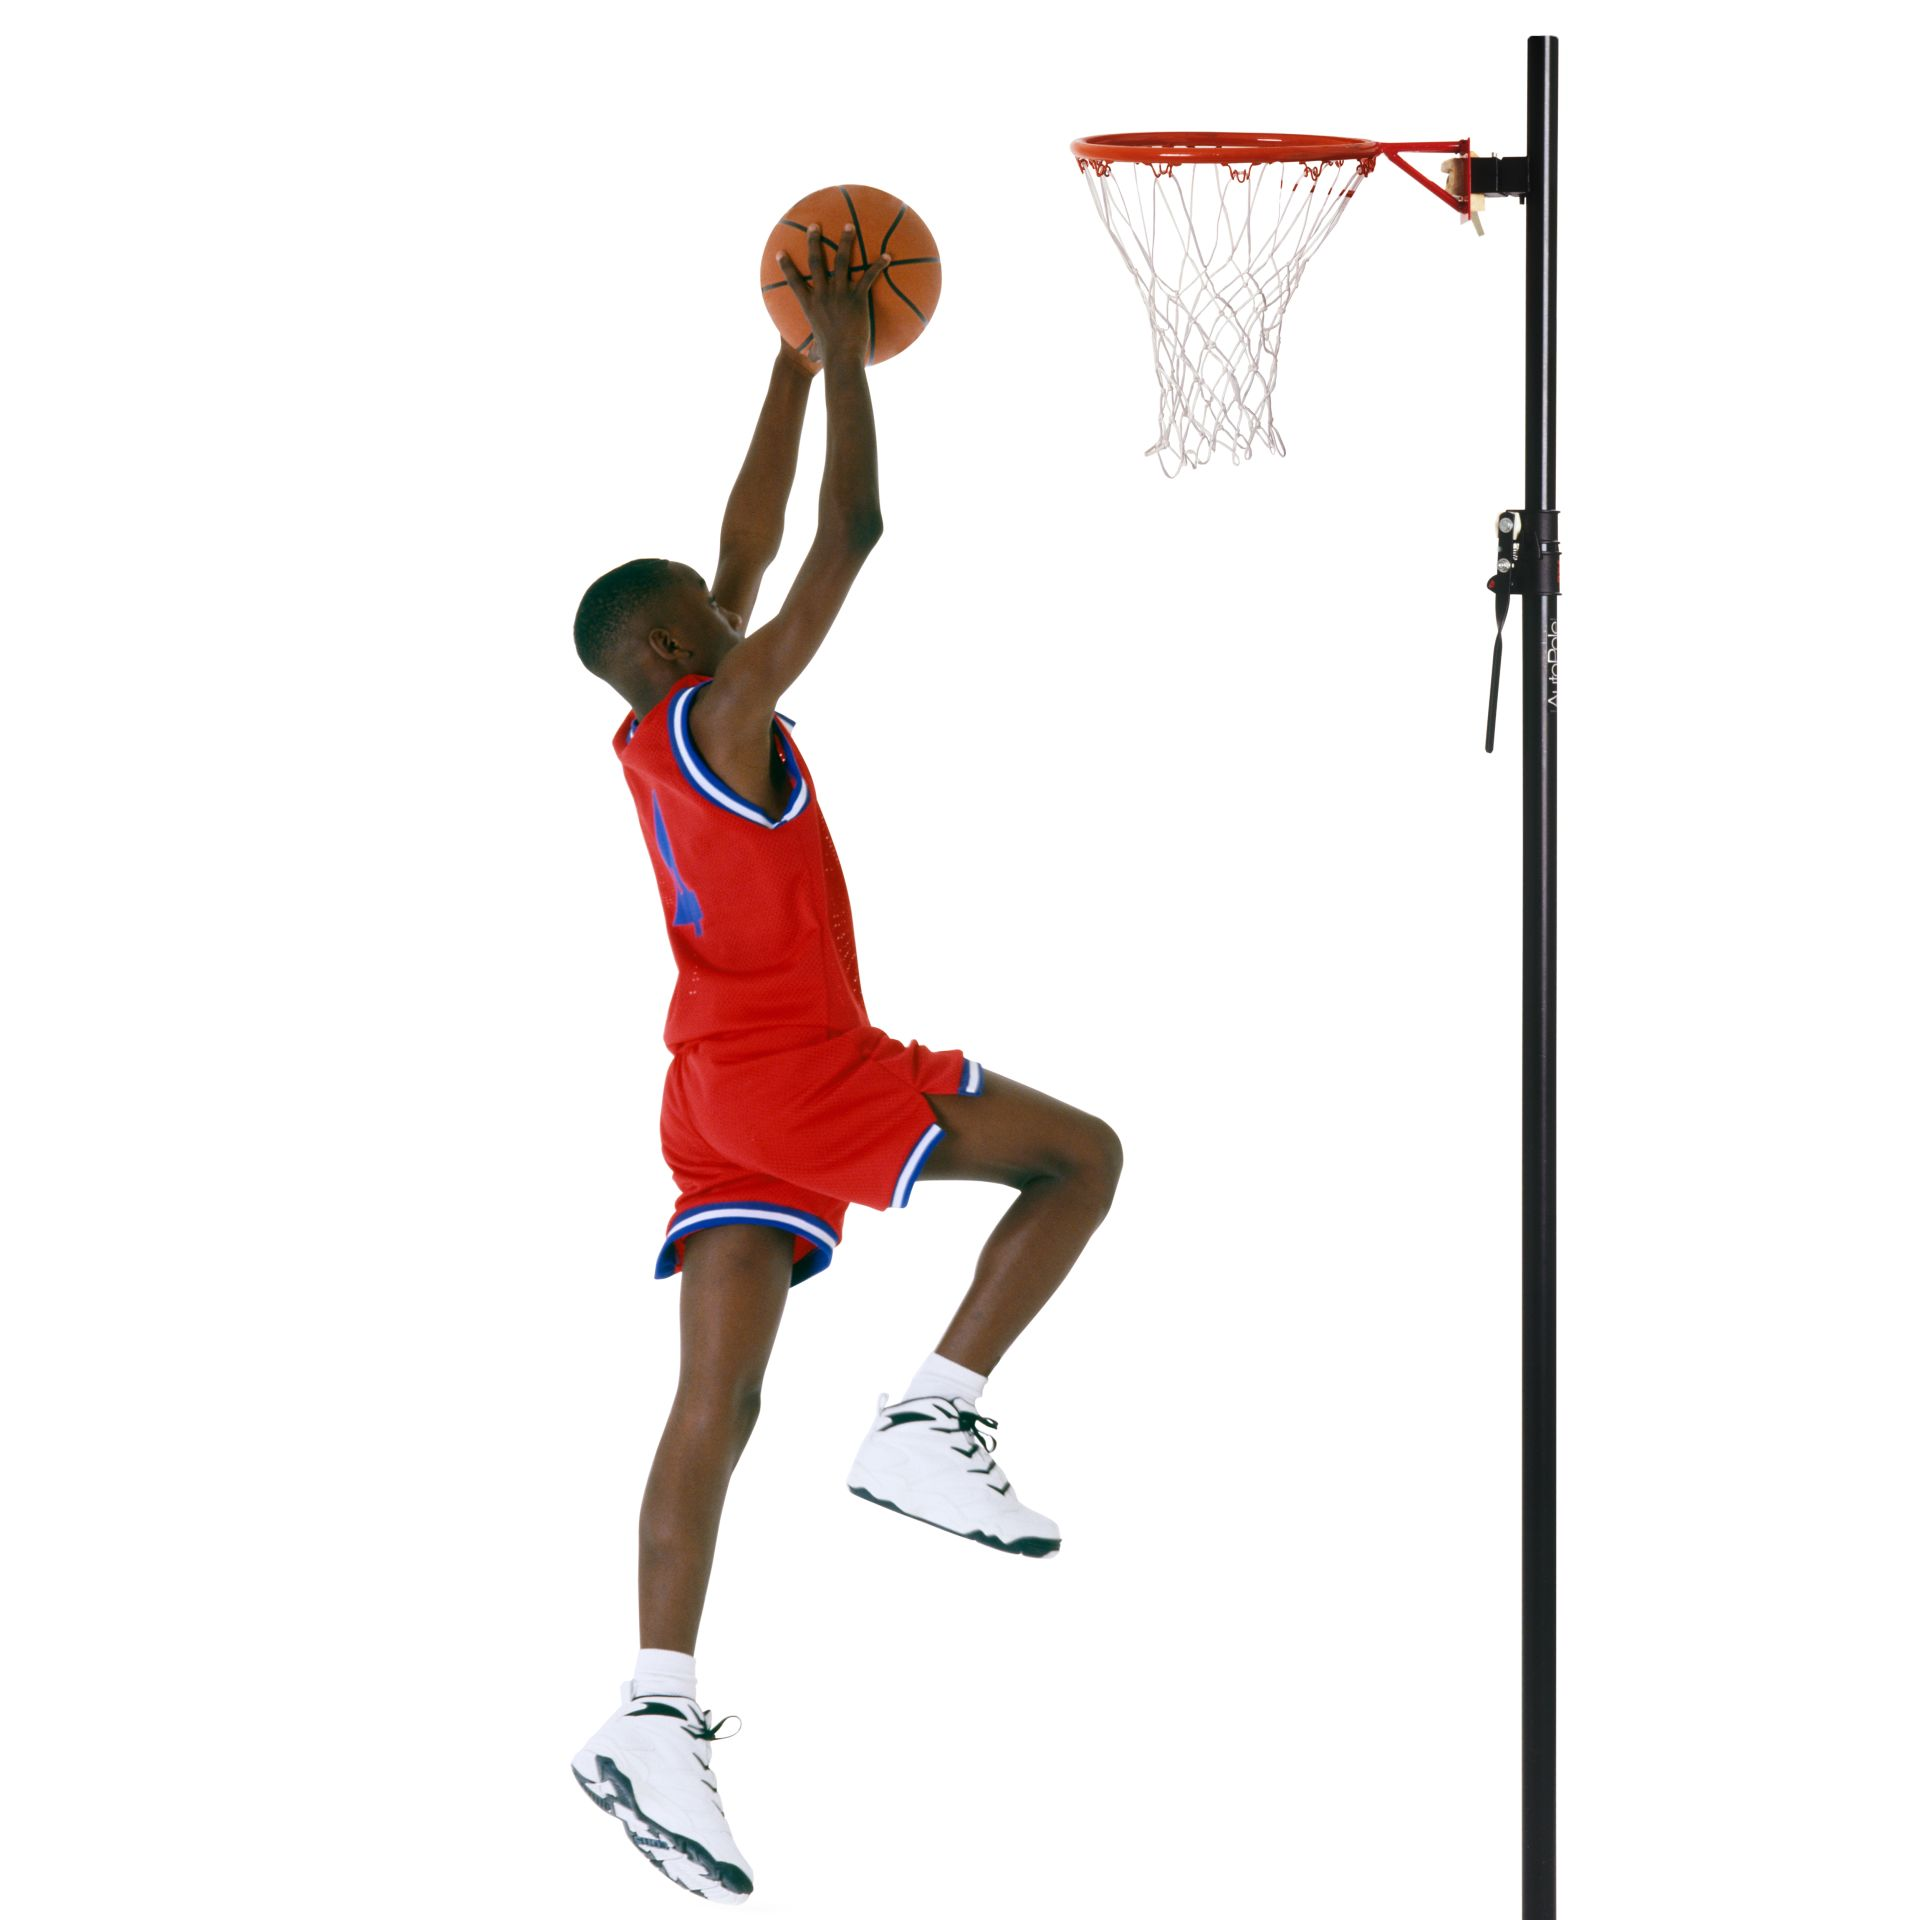 Facts About Basketball For Kids | DK Find Out